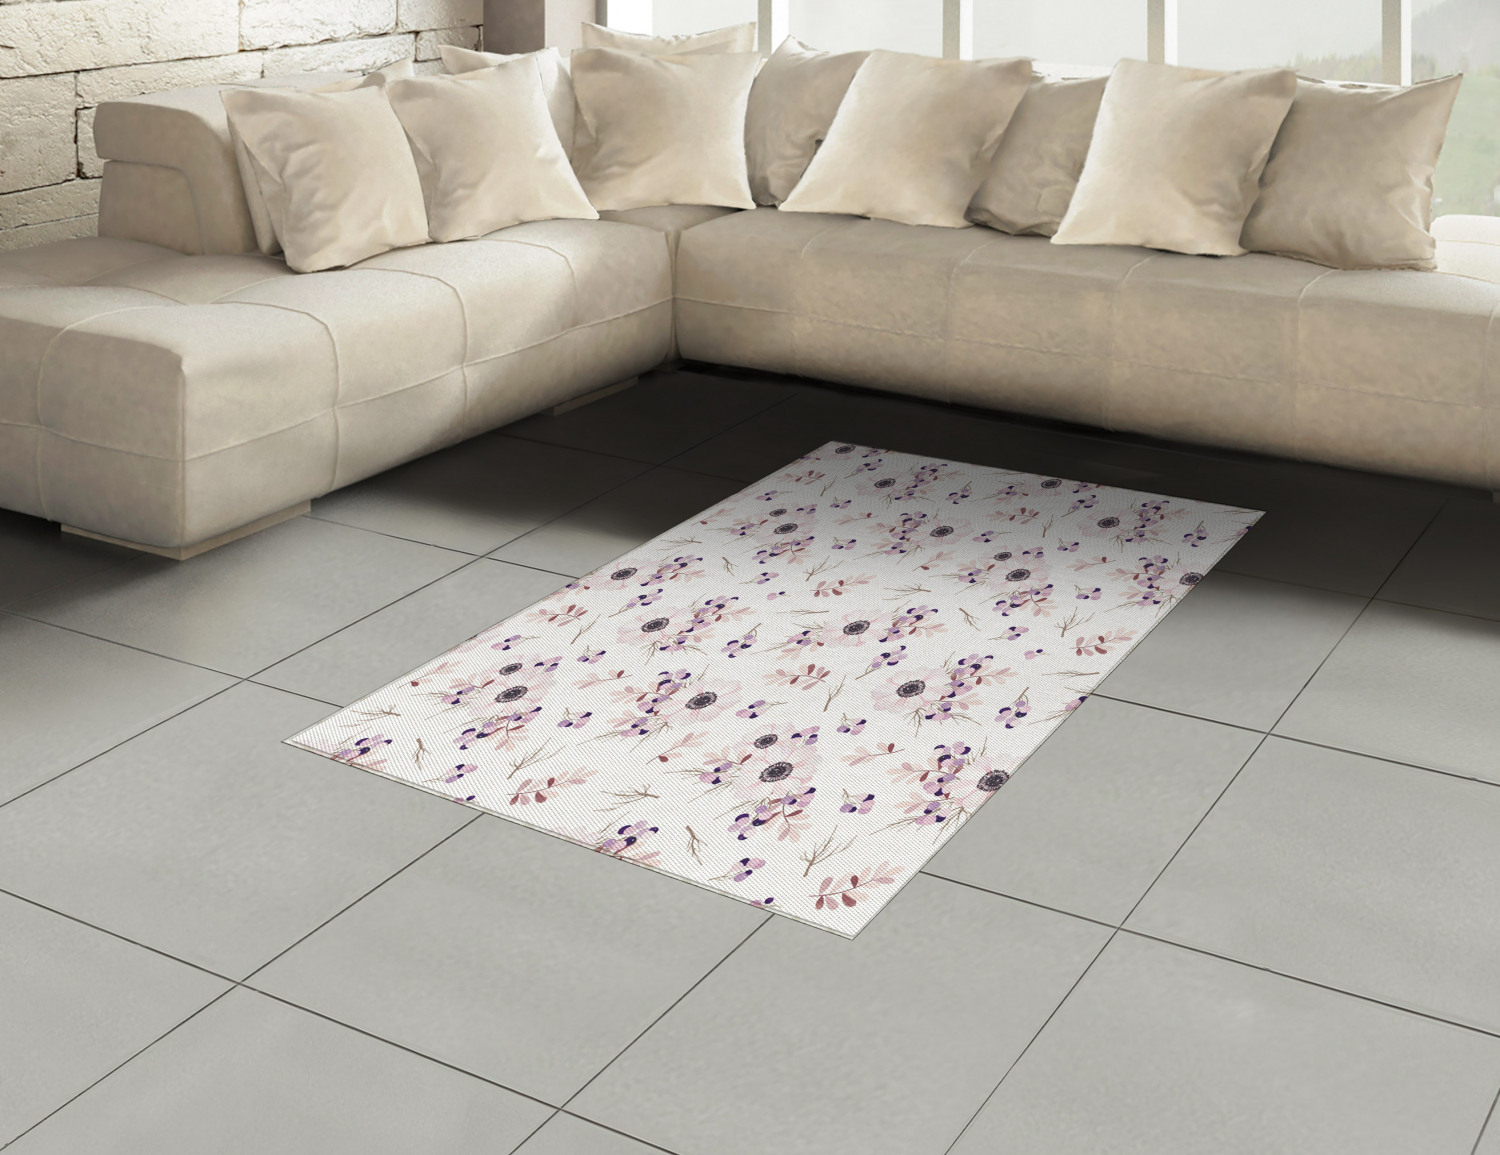 Anemone-Flower-Area-Rug-Decor-Flat-Woven-Accent-Rug-Home-Decor-2-Sizes-Ambesonne thumbnail 8